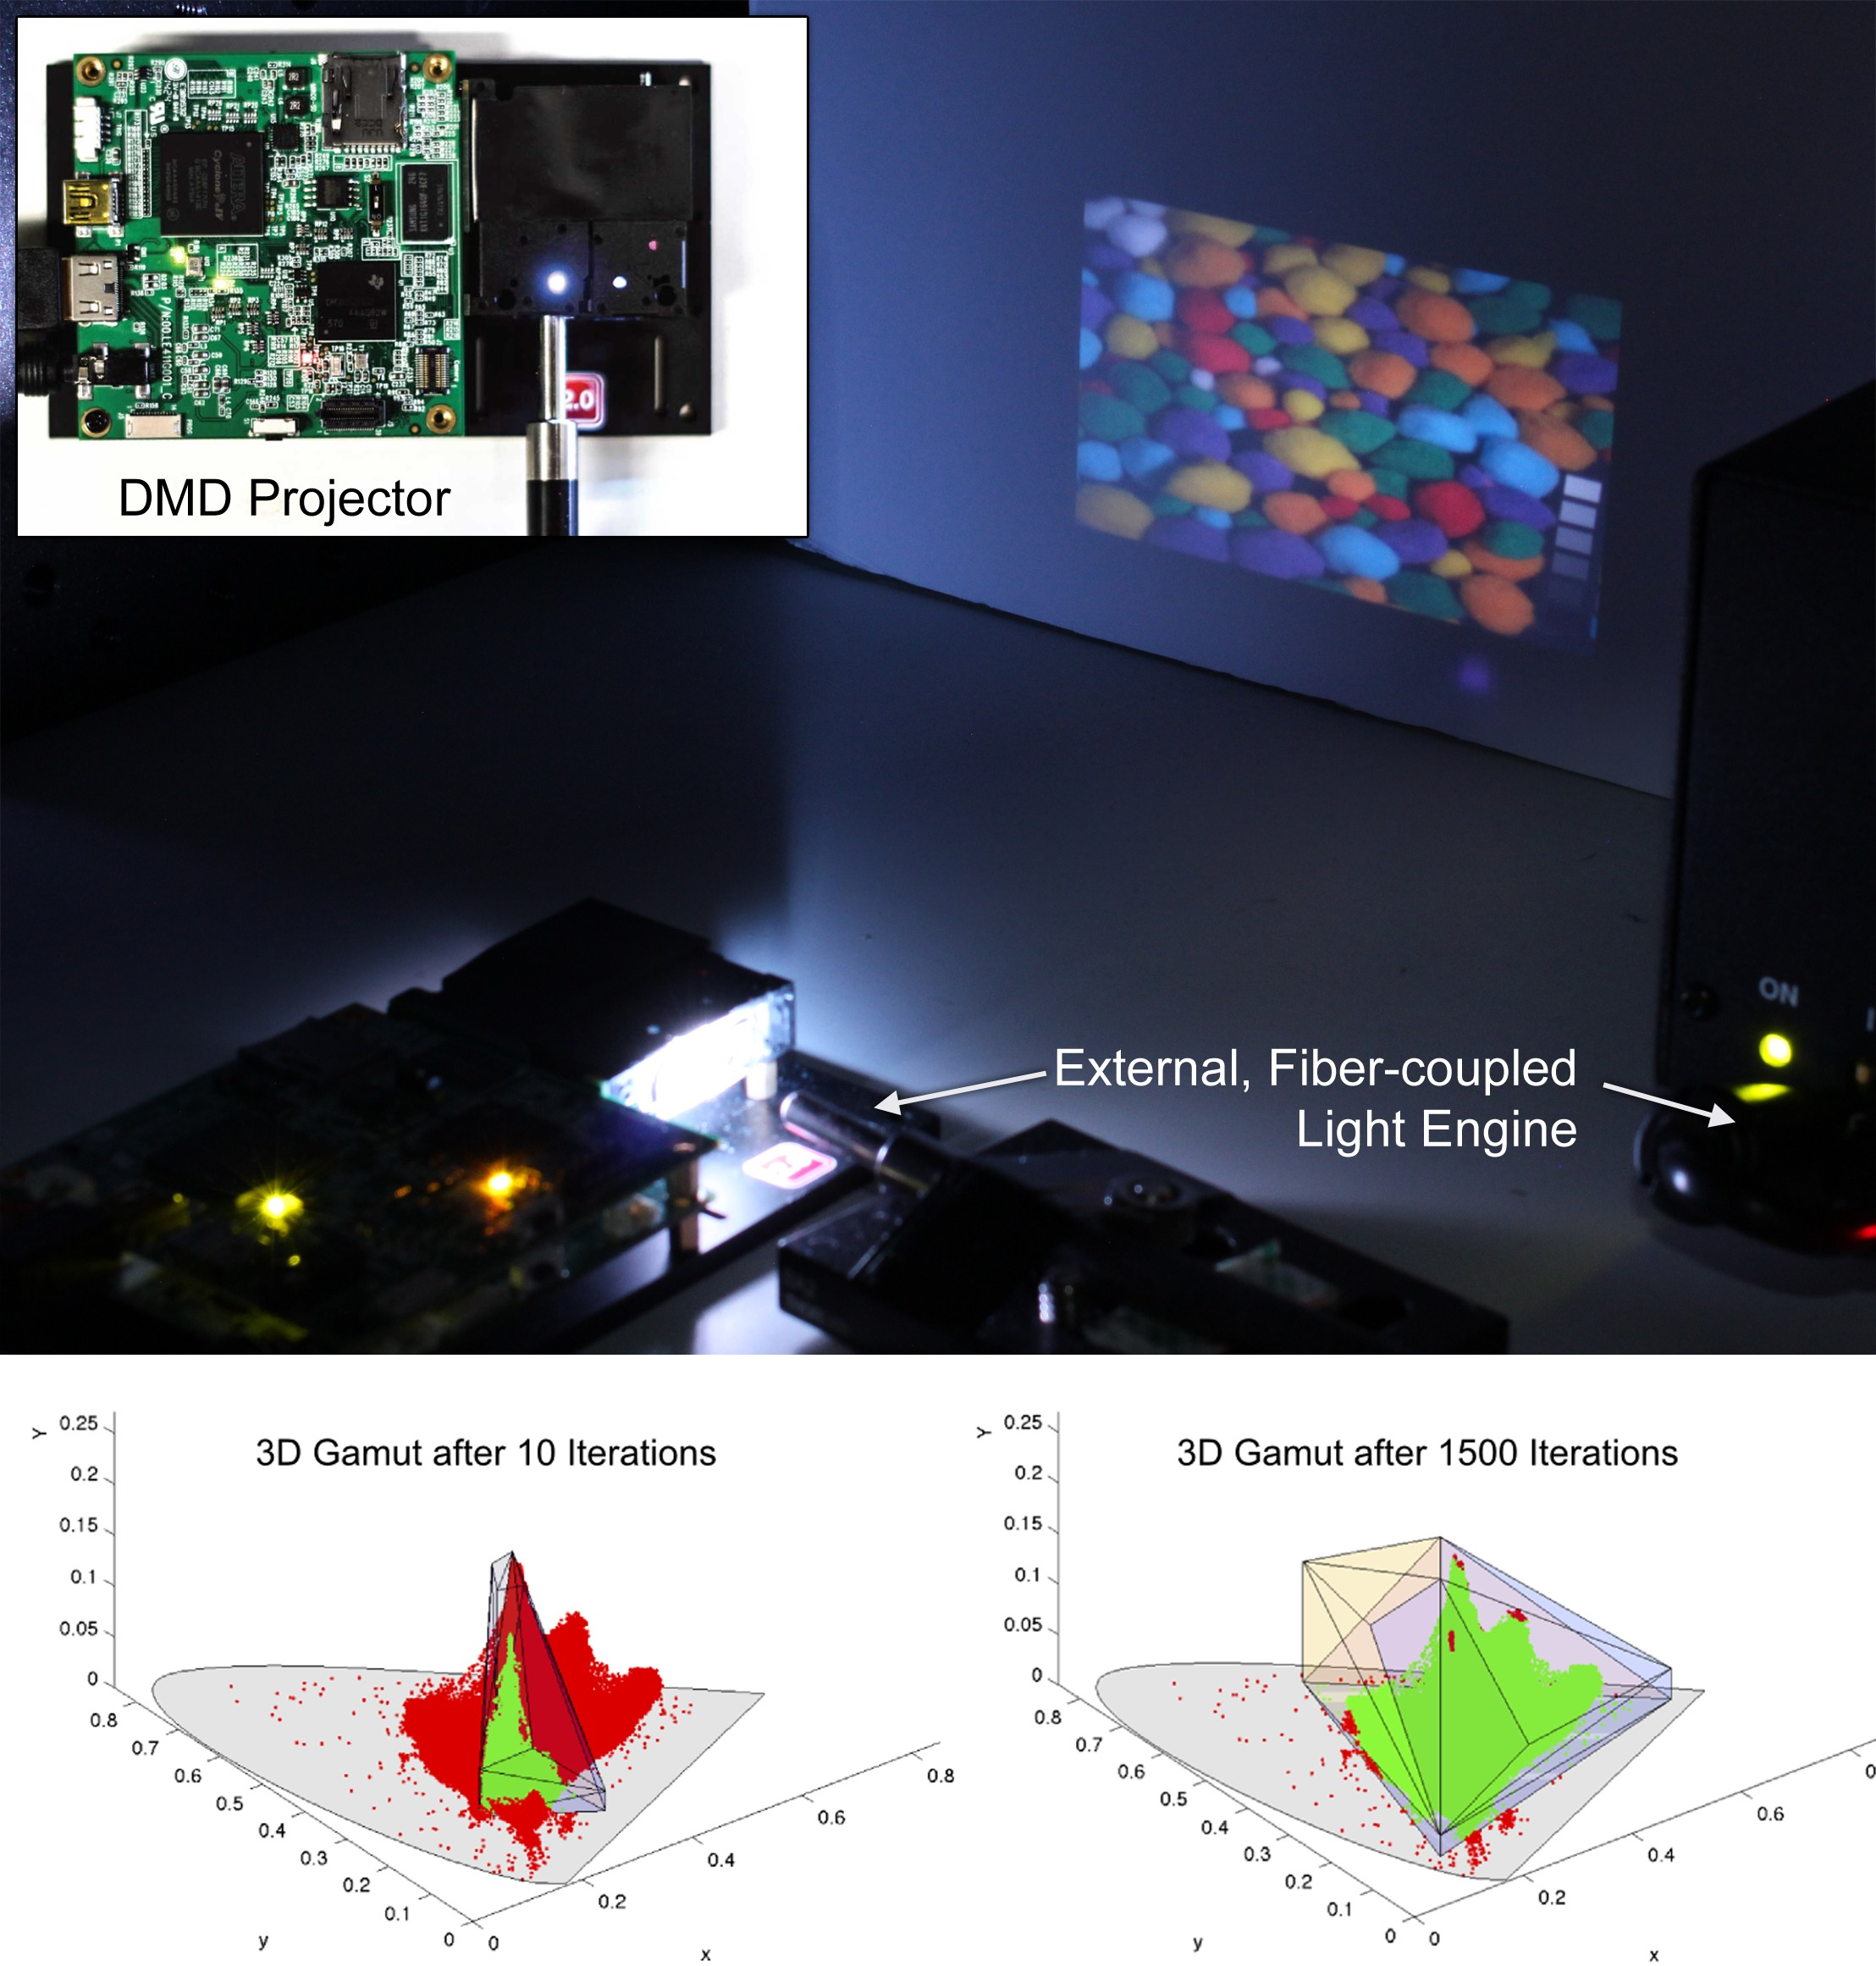 A summary of the project: (top left) hardware prototype of flexible gamut projector. (middle) prototype in action. (bottom) convergence of perceptual non-negative matrix factorization (PNMF) algorithm to final gamut selection and gamut mapping, shown here in CIEXYZ color space.